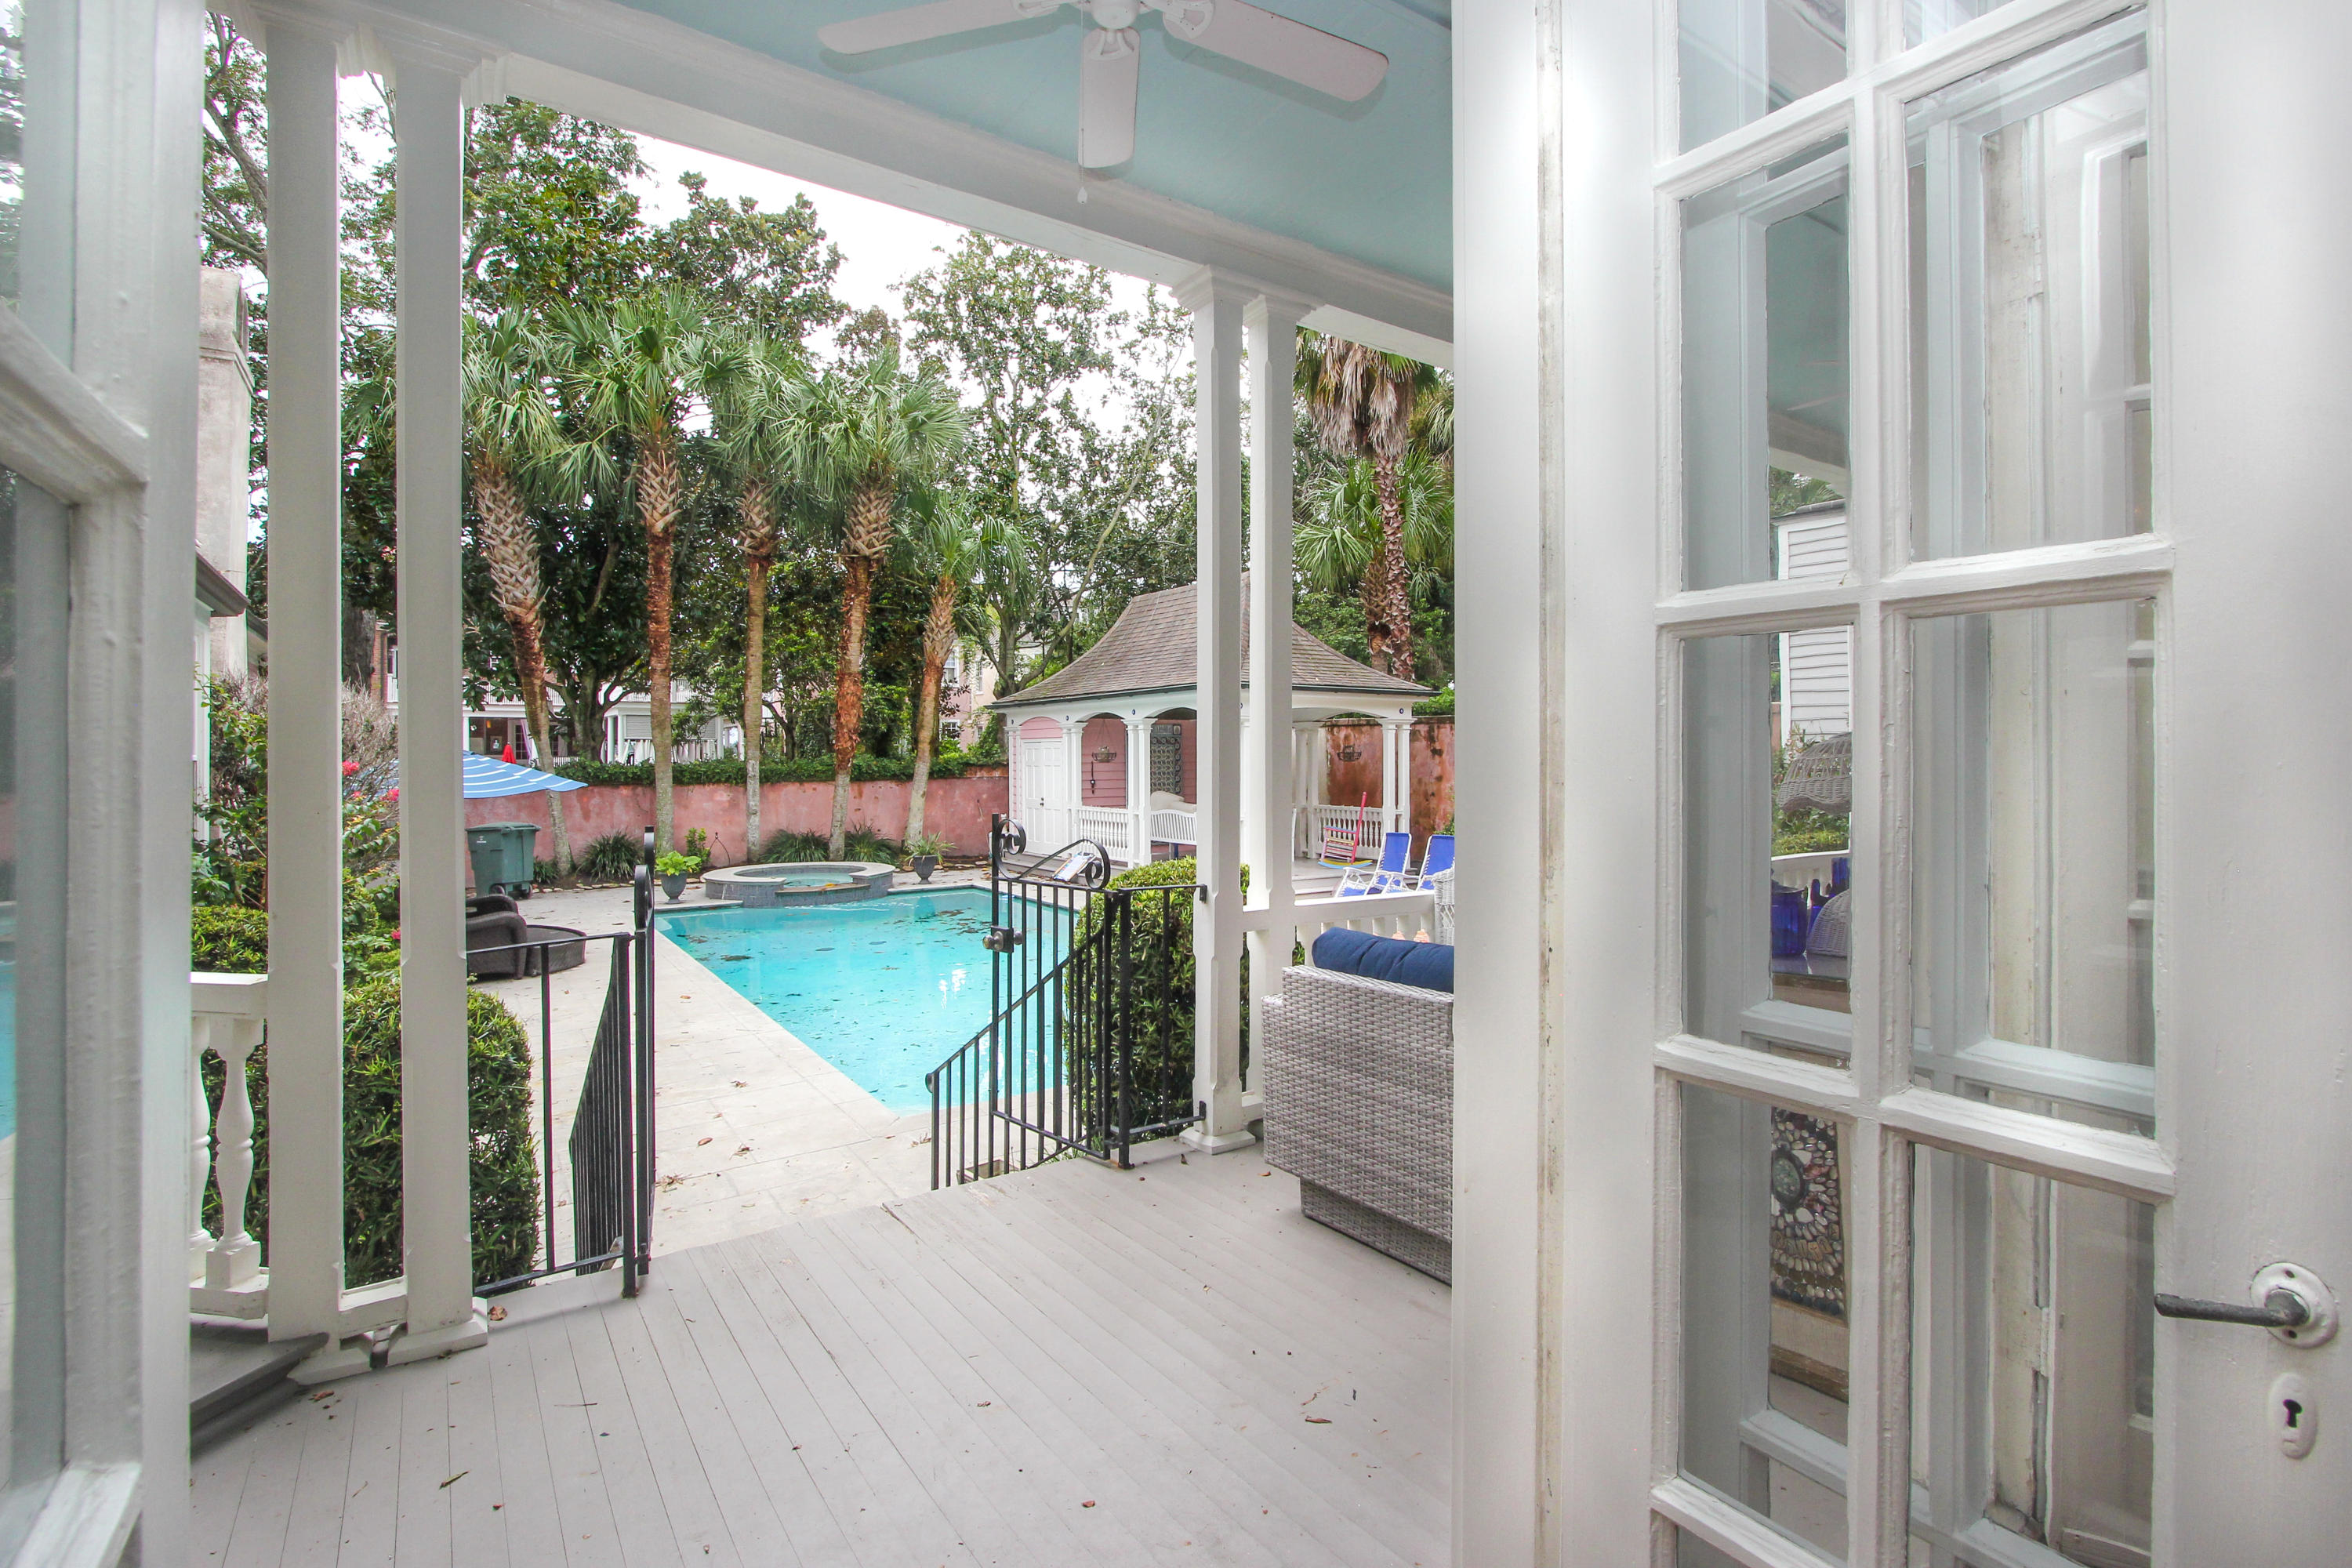 South of Broad Homes For Sale - 47 South Battery, Charleston, SC - 3